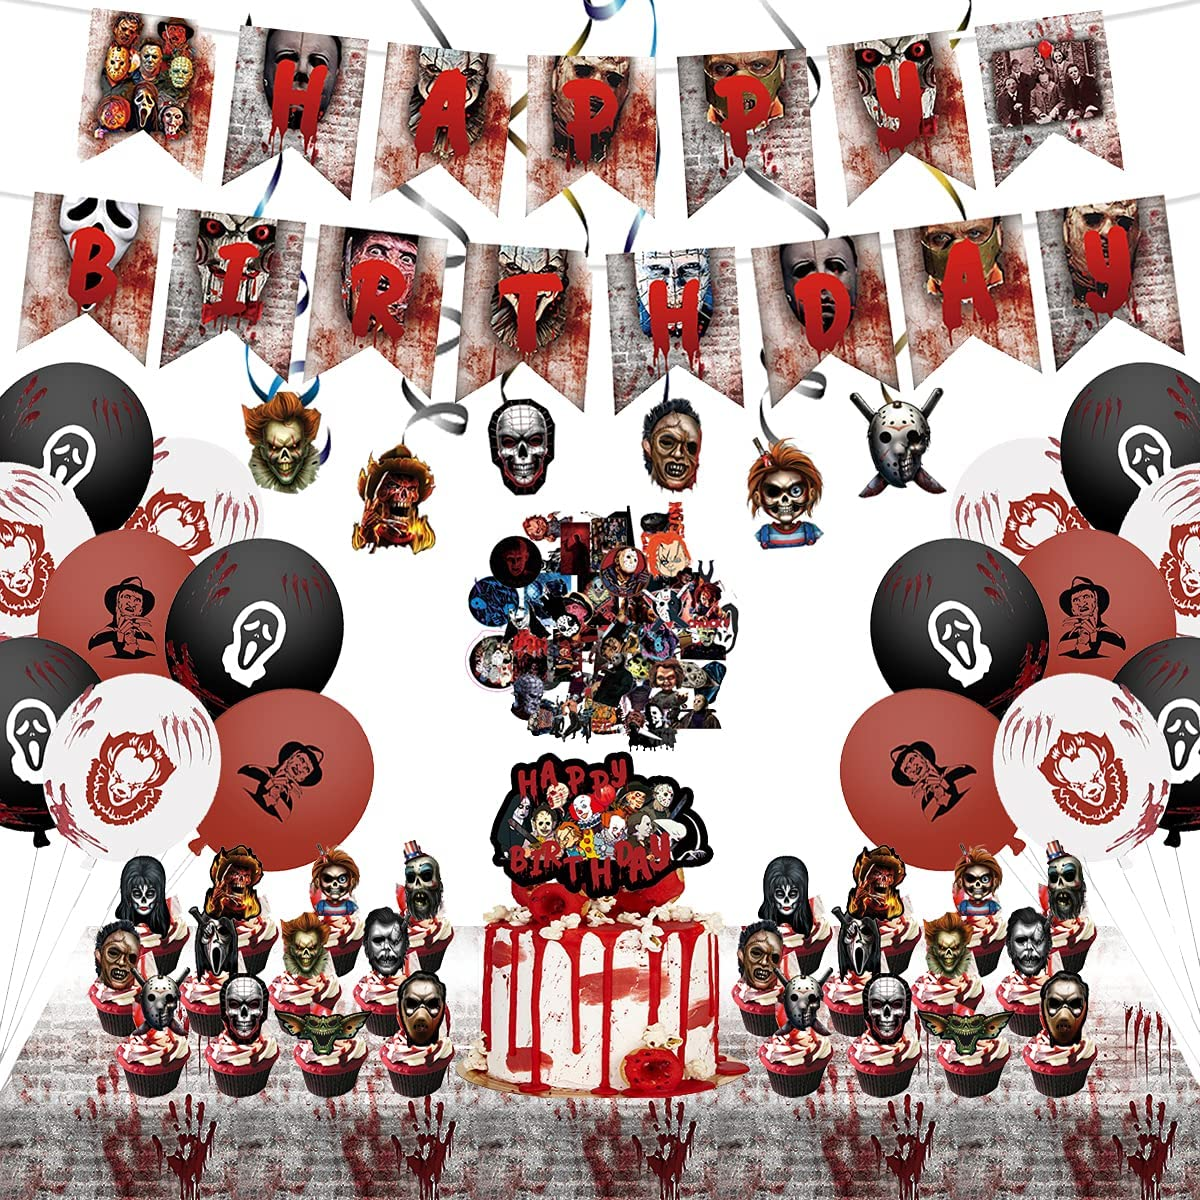 WILDPARTY Classic Horror Movie Party Decoration Supplies Include Banners Latex Balloons Hanging Swirls Cake Cupcake Toppers Stickers Table Cover for Kids Adults Nightmare Before Halloween Party Decor